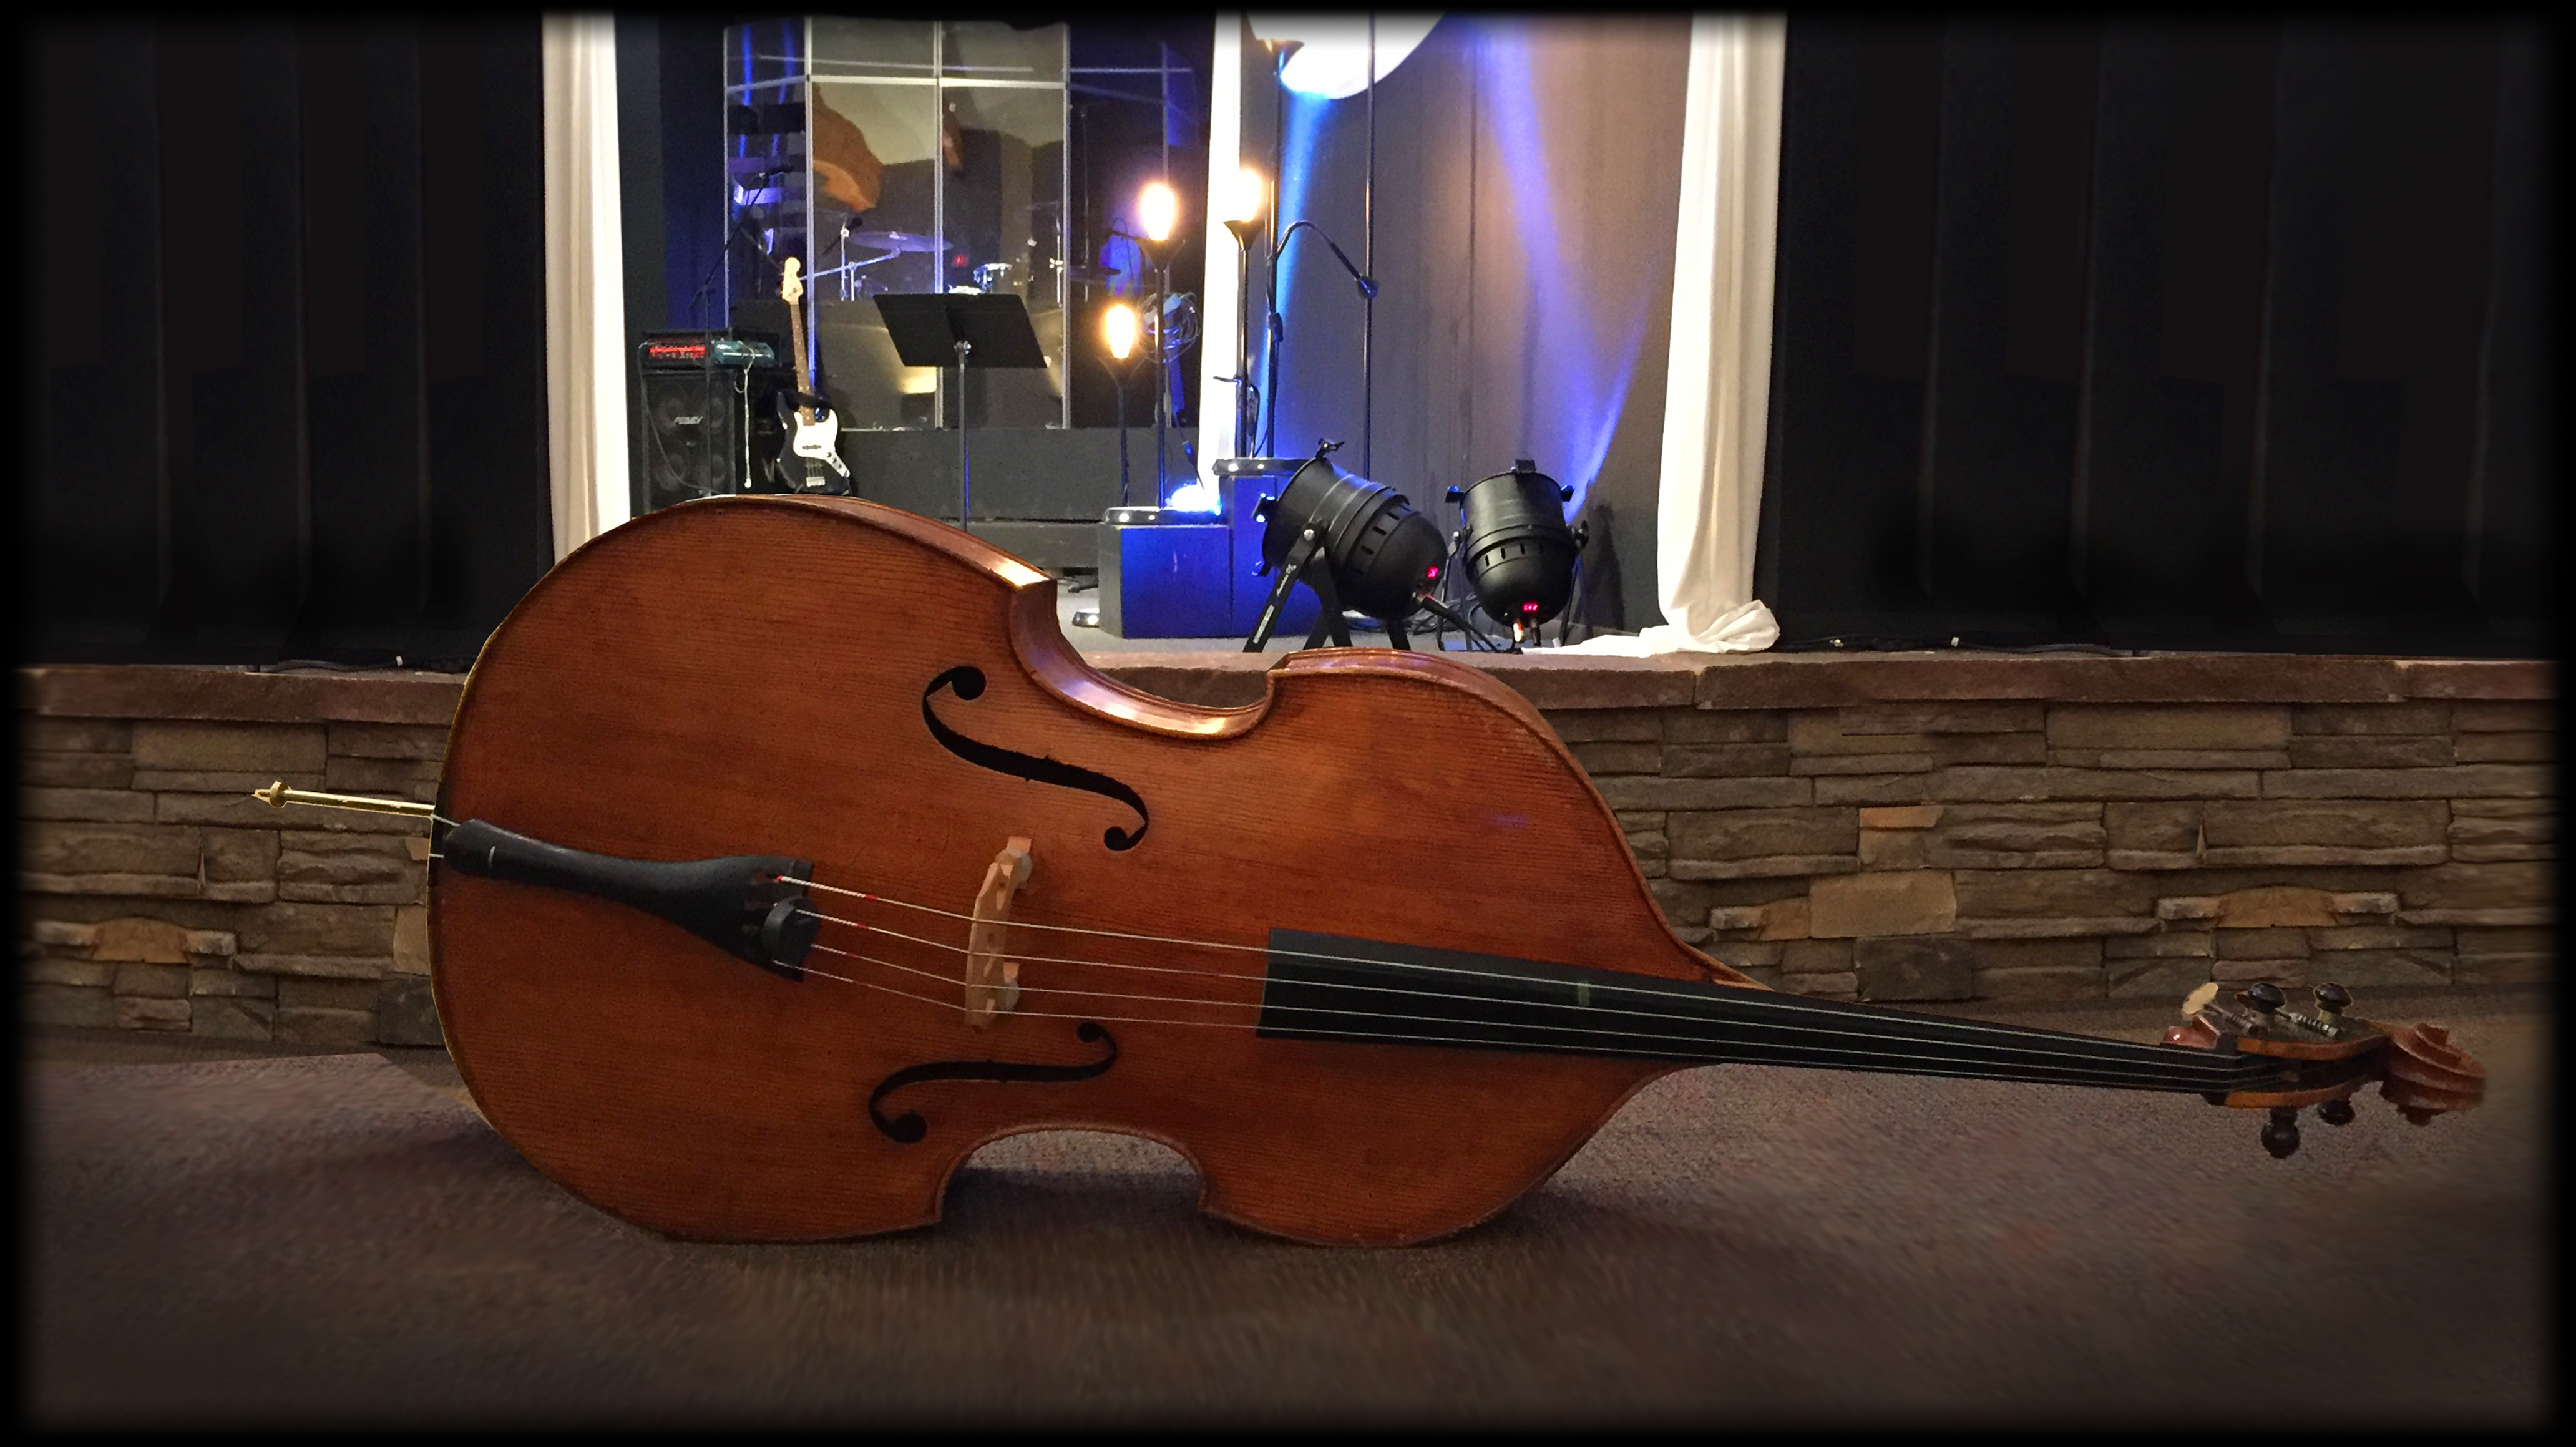 Image of instrument in front of stage.